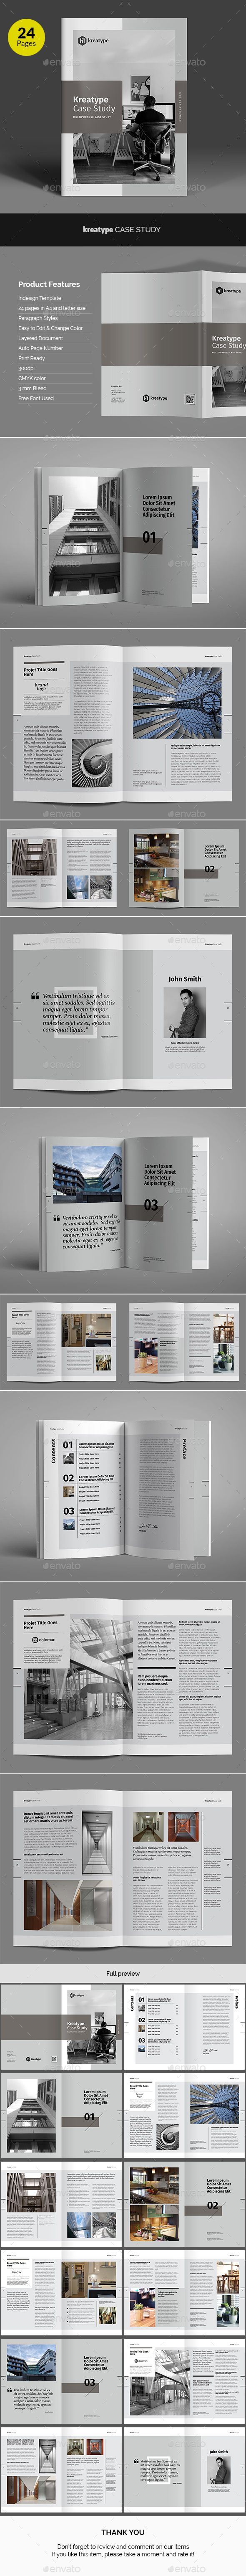 Kreatype Case Study Brochure Template 	InDesign INDD. Download here: https://graphicriver.net/item/kreatype-case-study/17367644?ref=ksioks